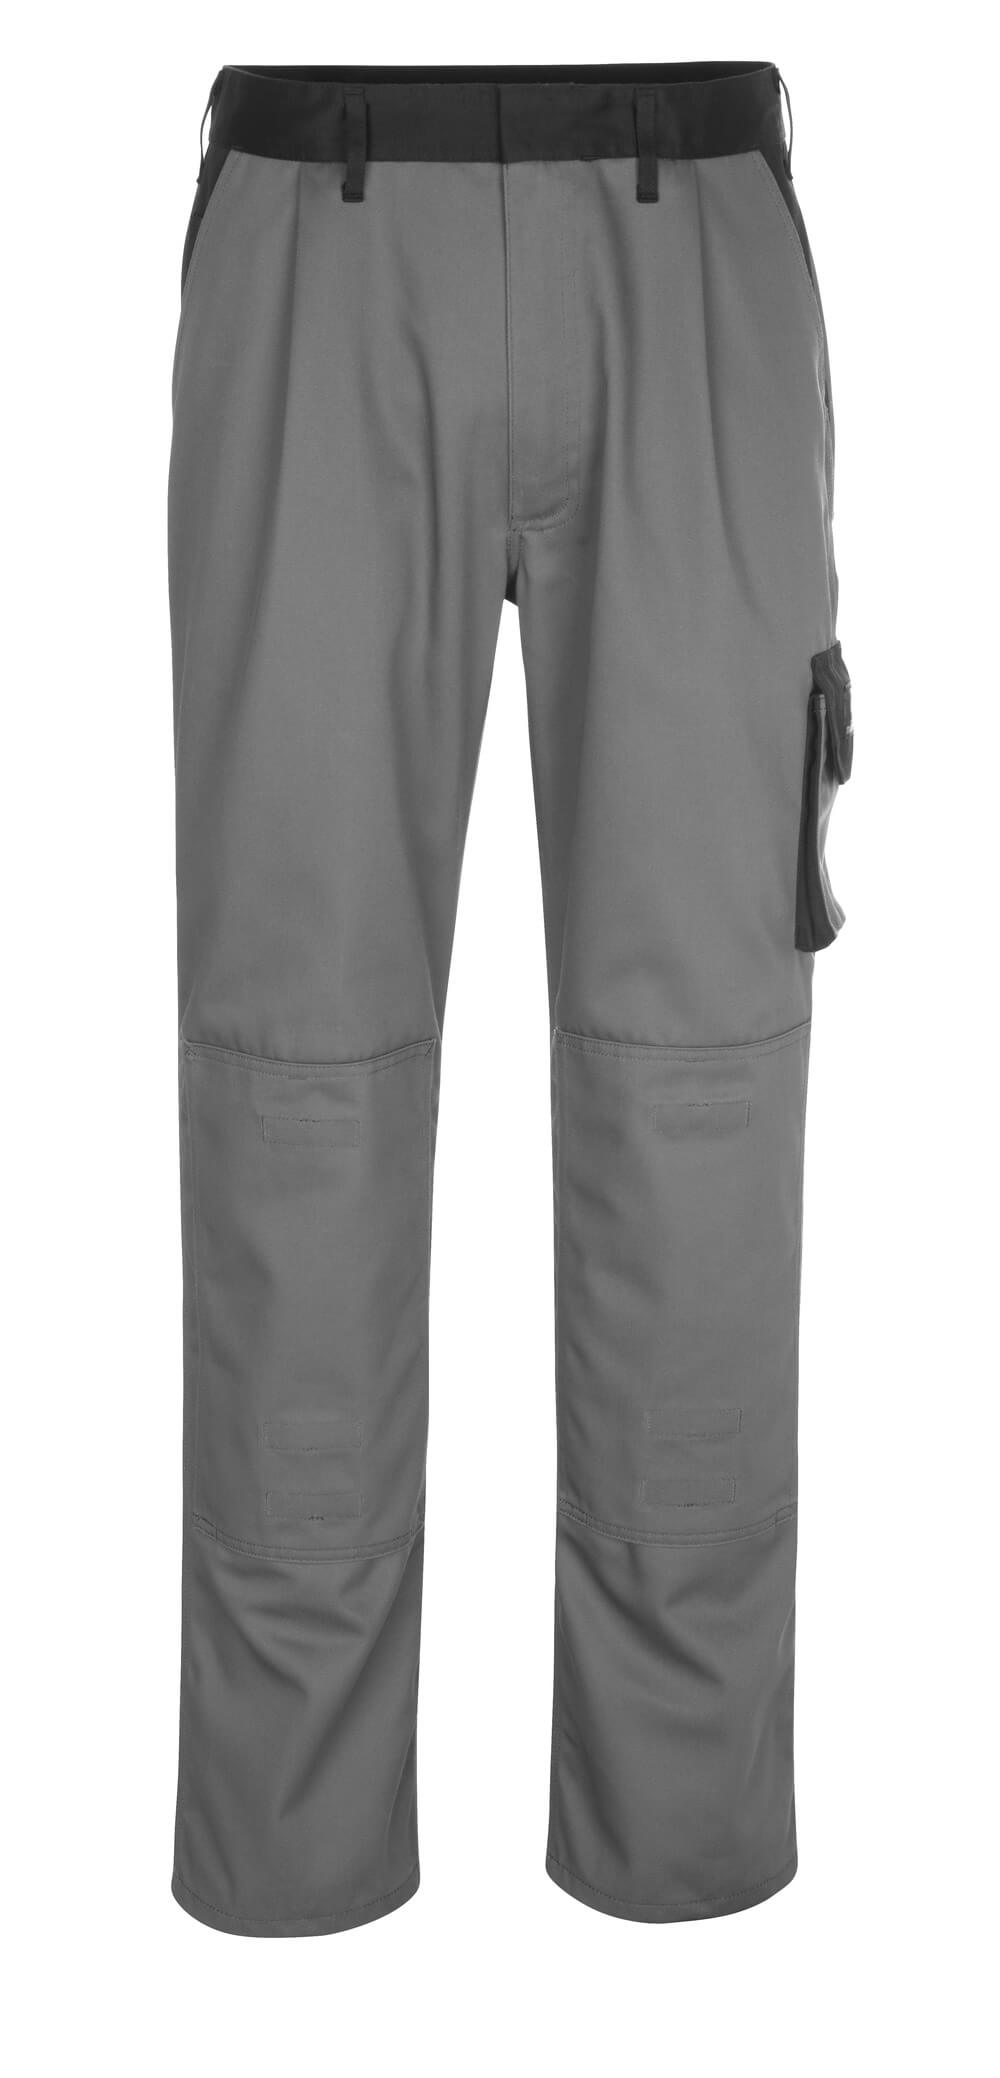 14179-442-8889 Pants with kneepad pockets - anthracite/black